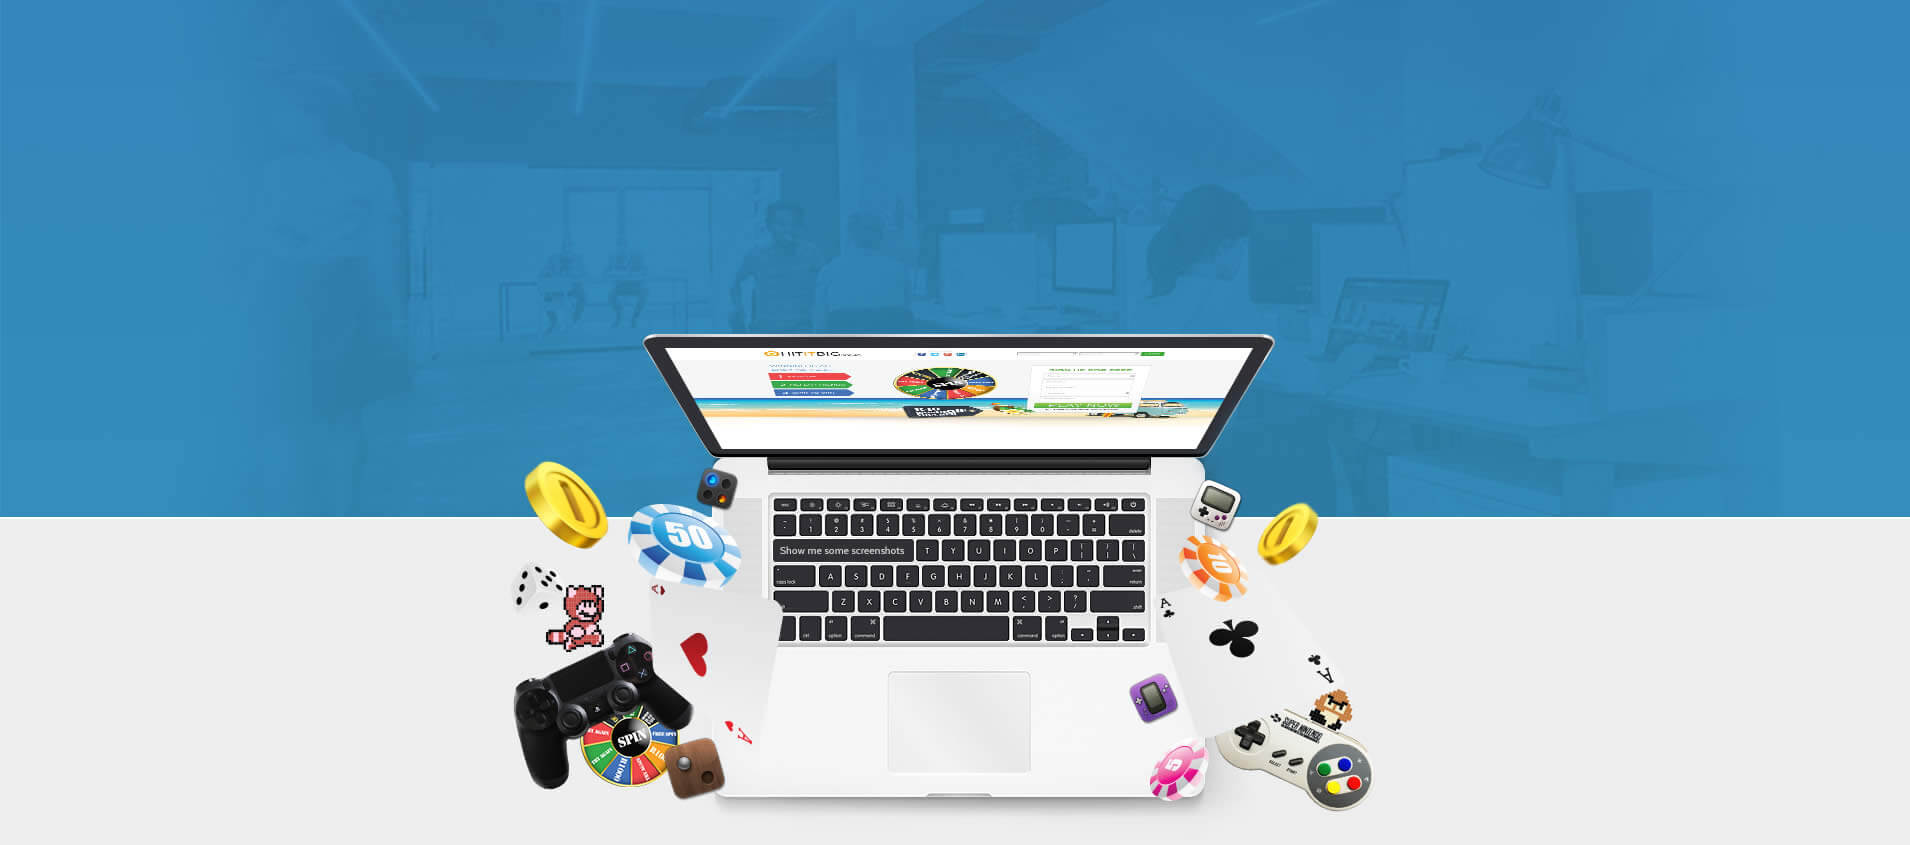 COMPETITION-AND-GAME-CREATION-just-perfect-digital-marketing-agency